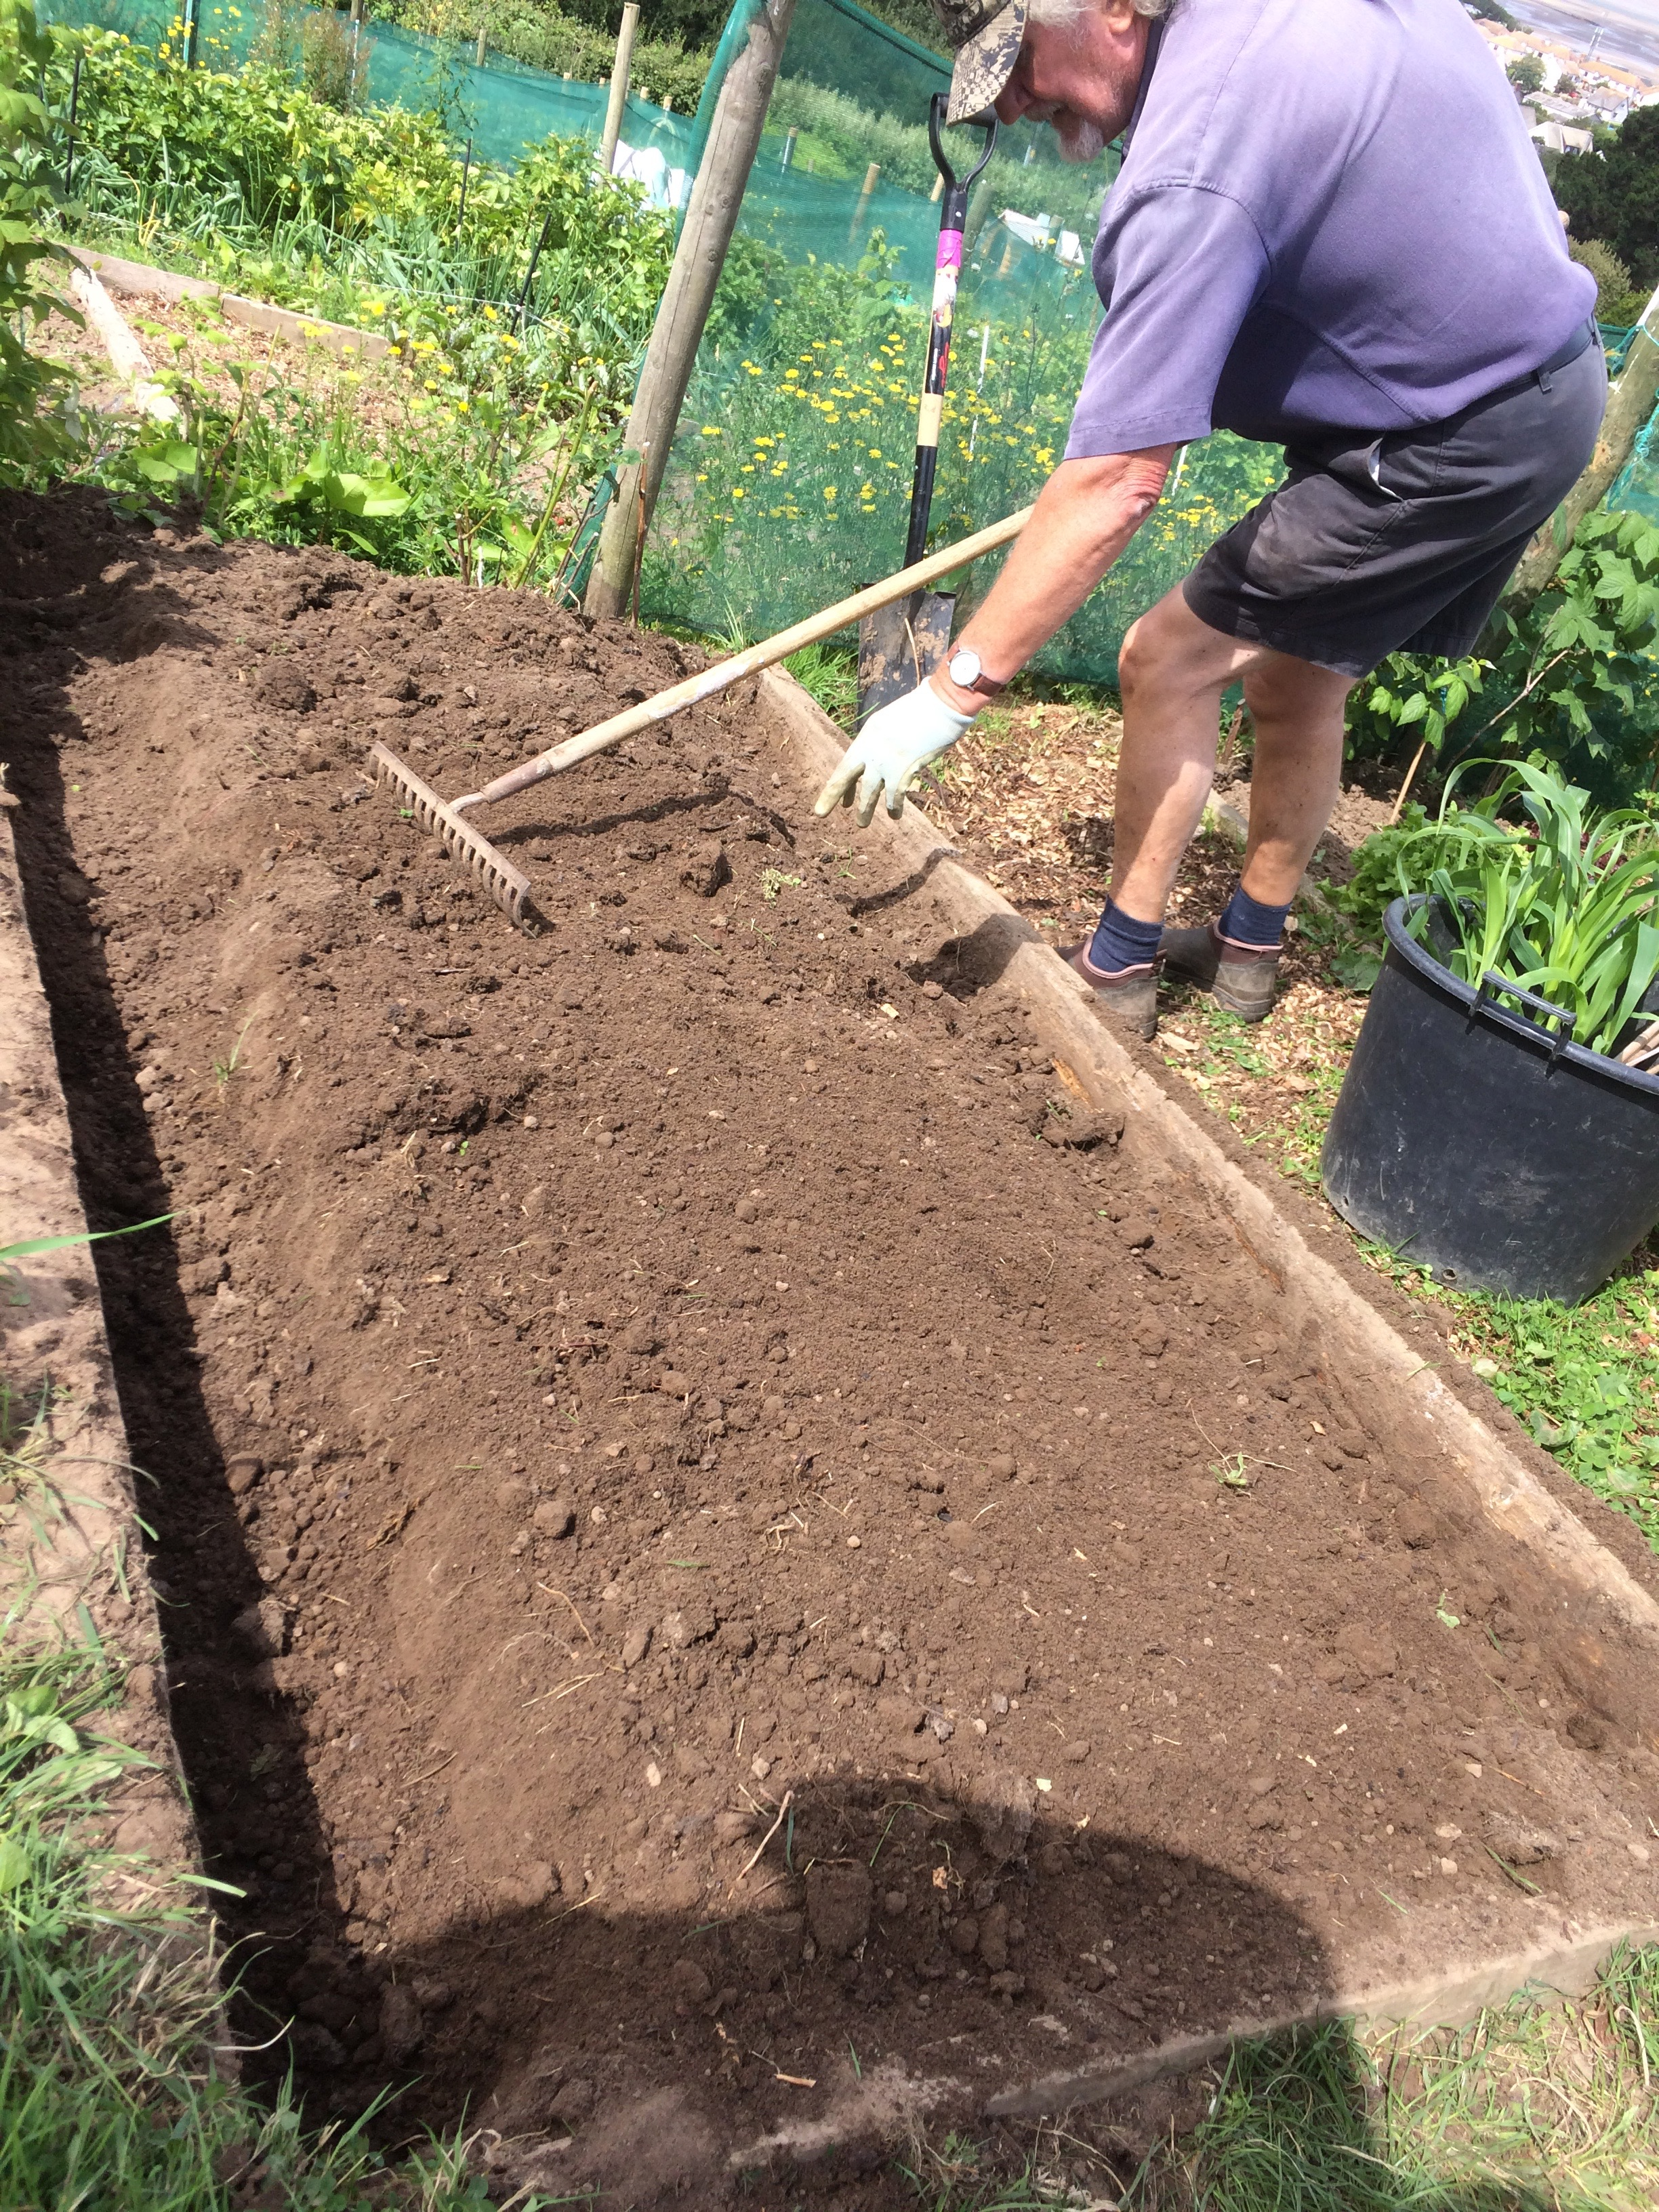 Allotment growing potatoes